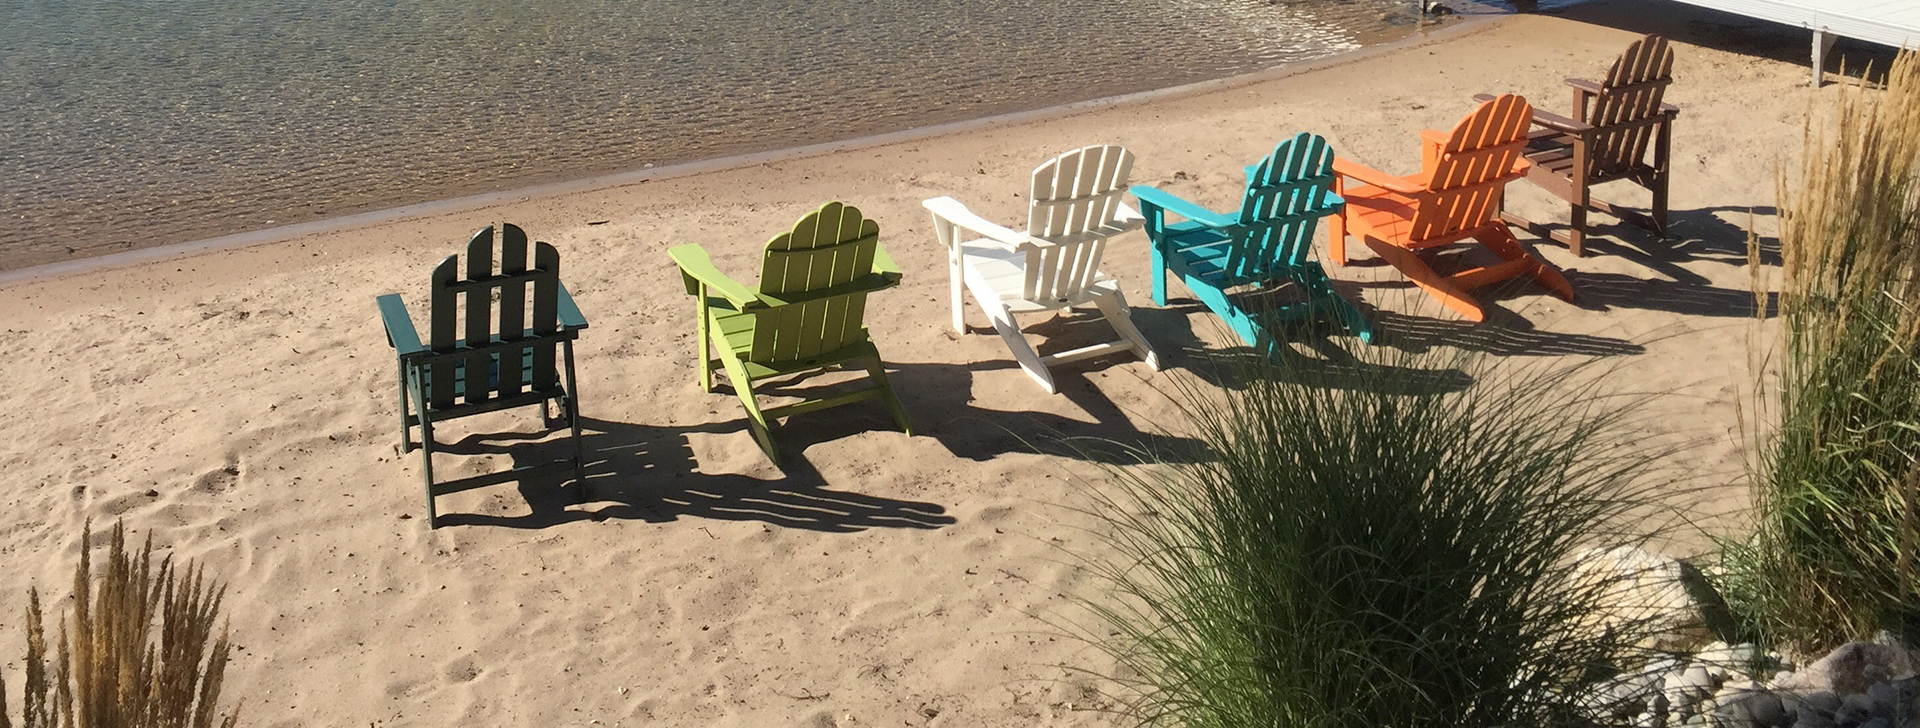 Adirondacks on a Beach